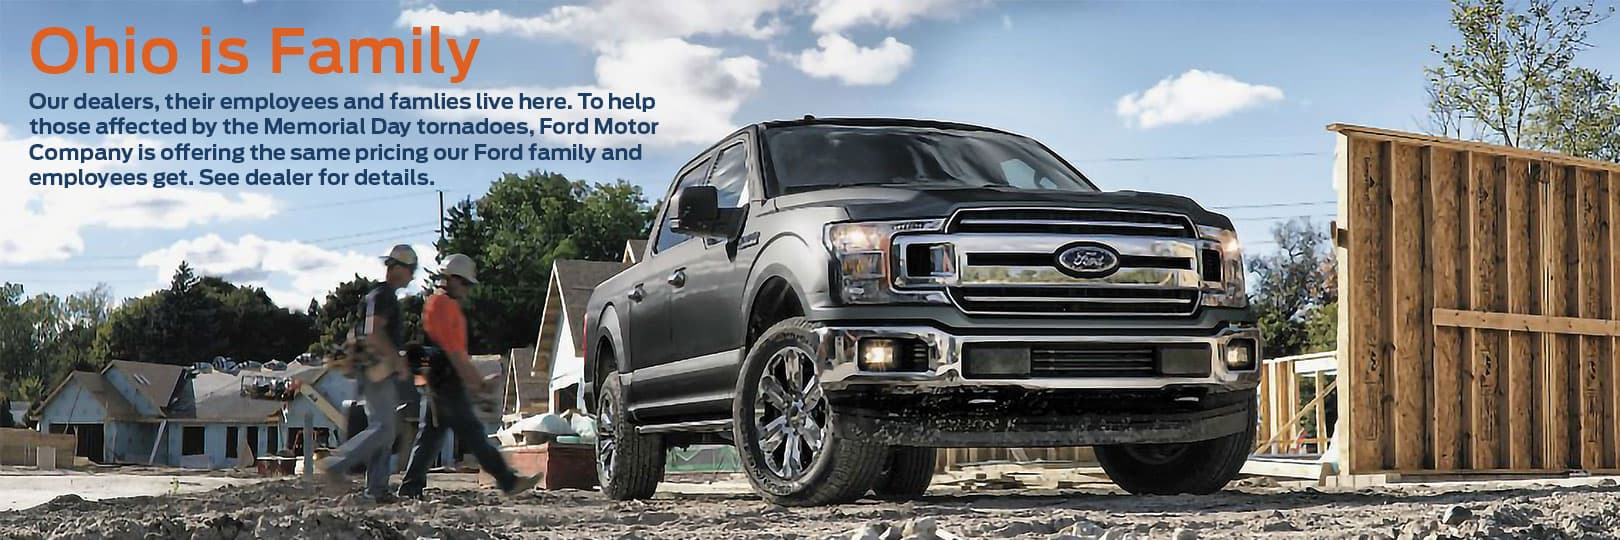 Used Tires Dayton Ohio >> Germain Ford Of Beavercreek New Used Cars For Sale Ford